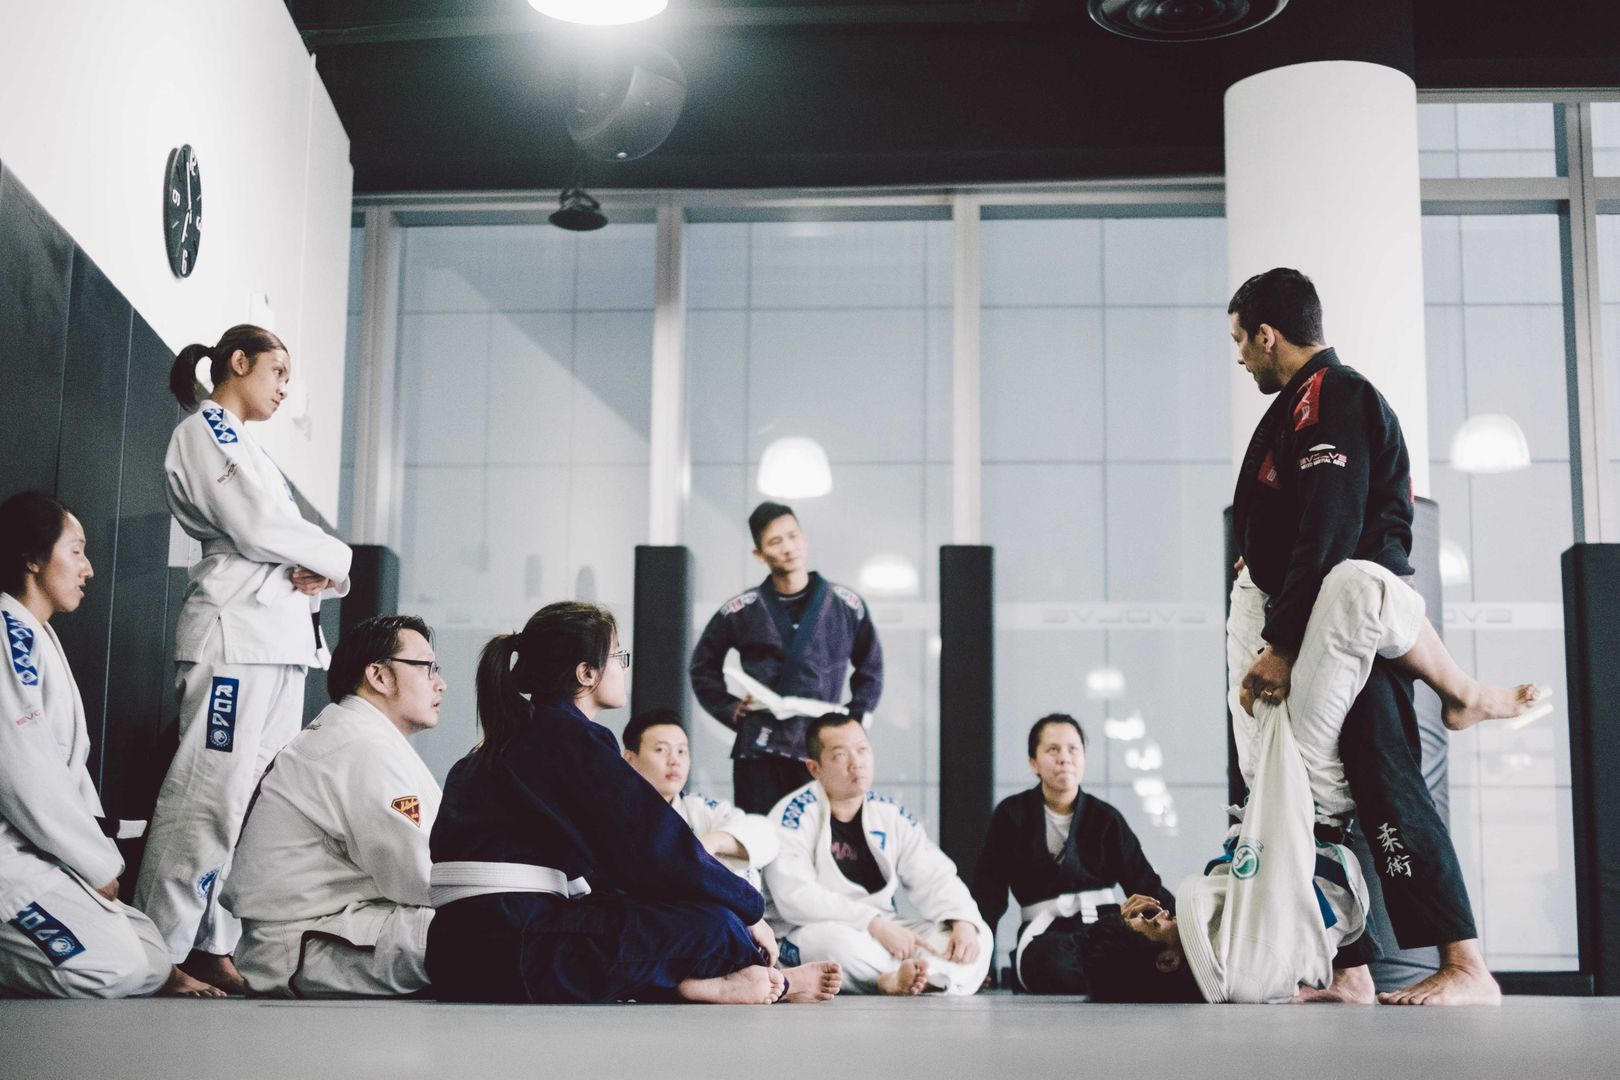 There's never a dull moment in BJJ, with the many different techniques to learn.